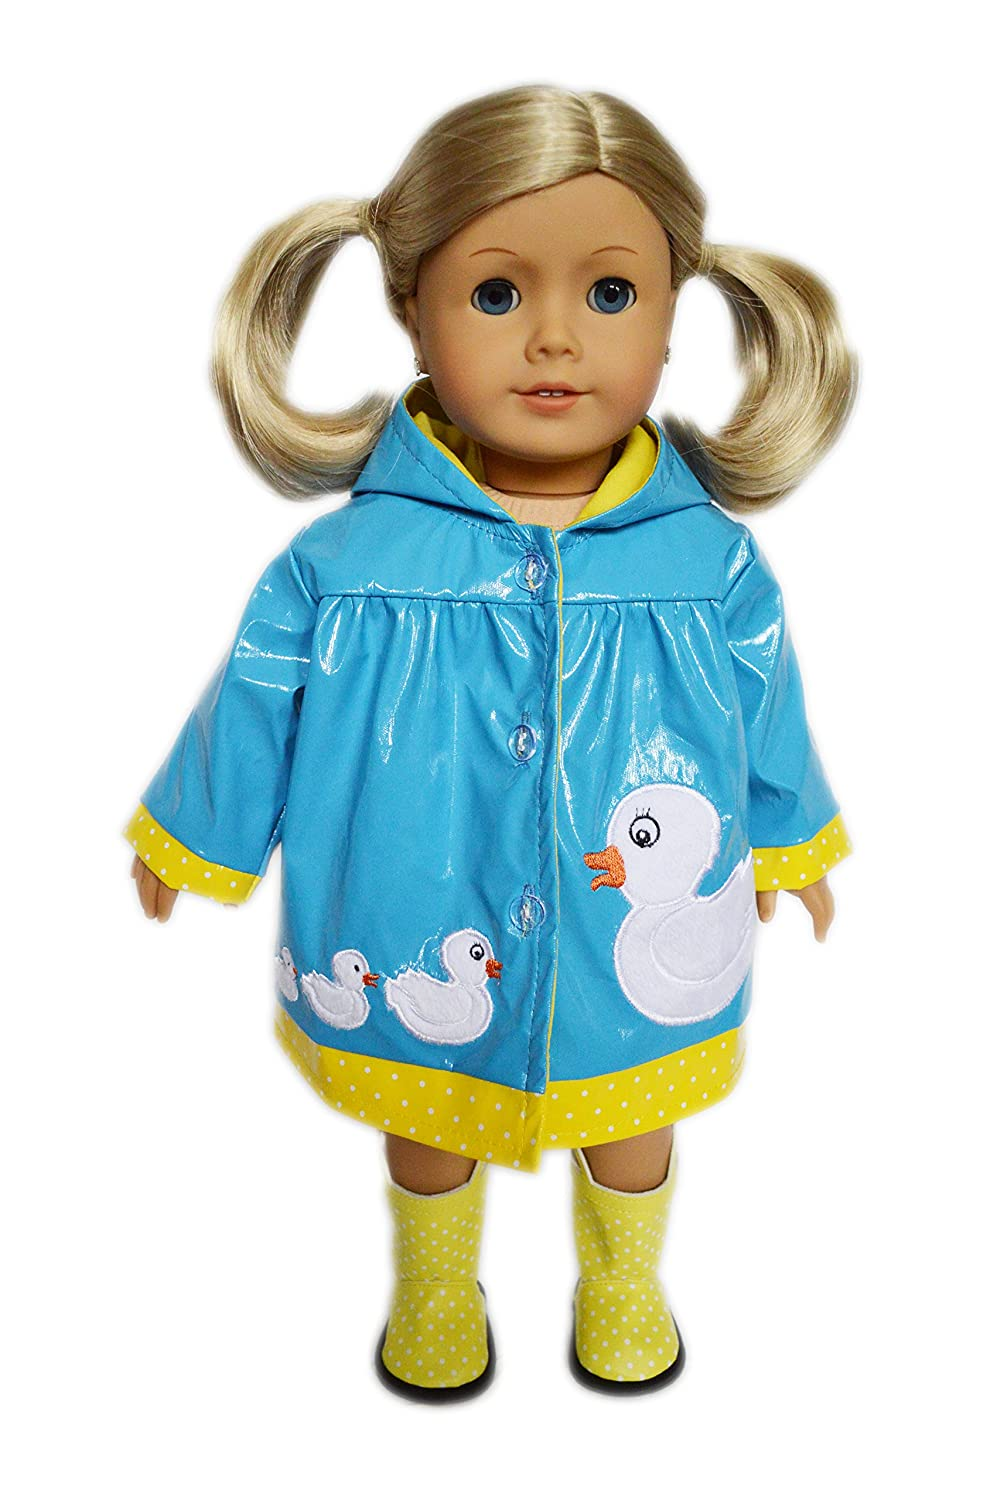 My Brittany's Blue Ducky Raincoat With Boots for American Girl Dolls   B072ST9MK4